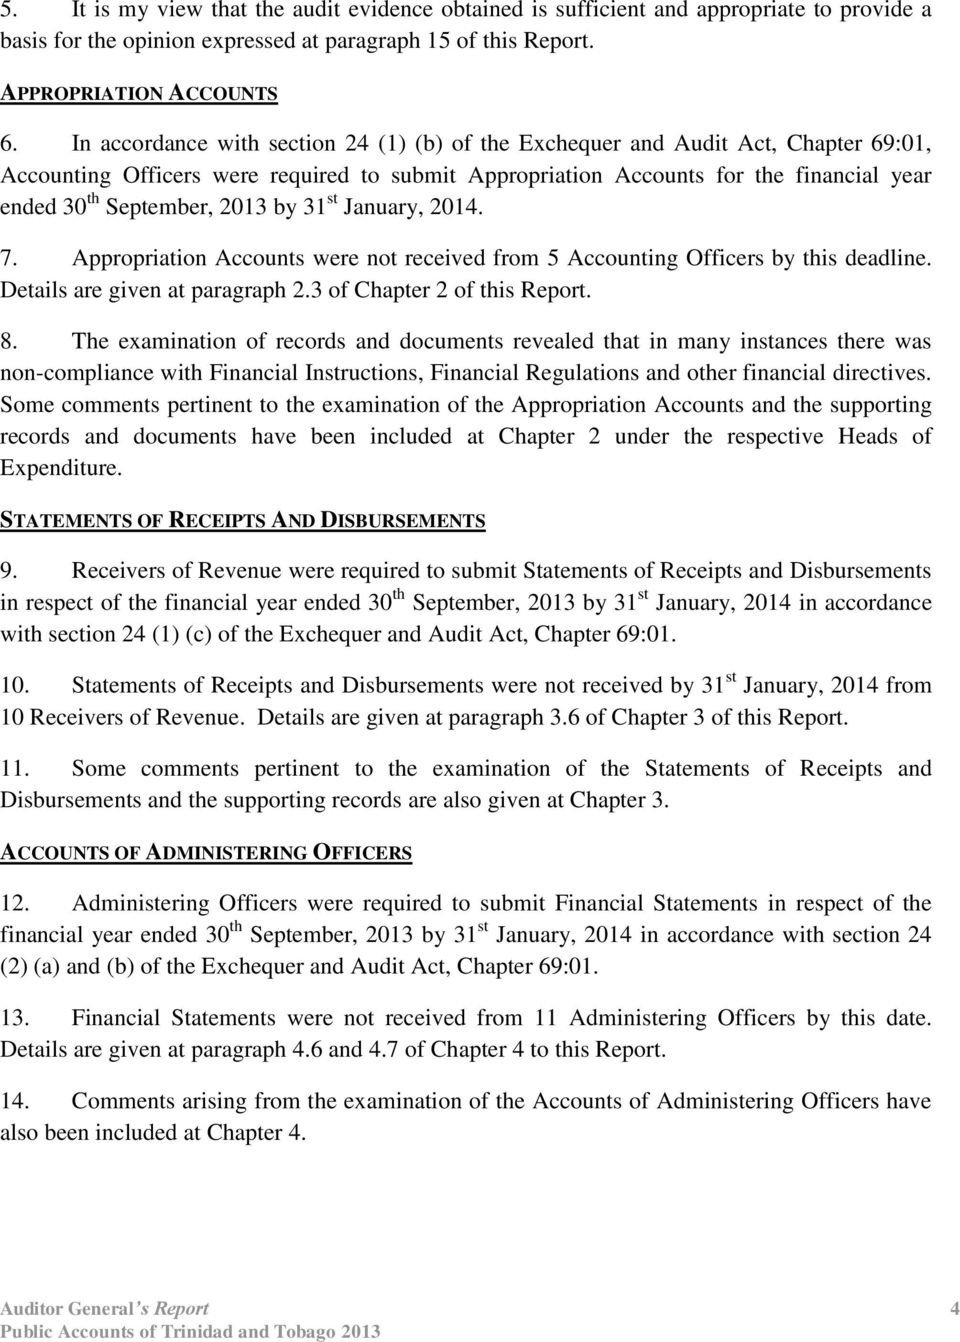 2013 by 31 st January, 2014. 7. Appropriation Accounts were not received from 5 Accounting Officers by this deadline. Details are given at paragraph 2.3 of Chapter 2 of this Report. 8.